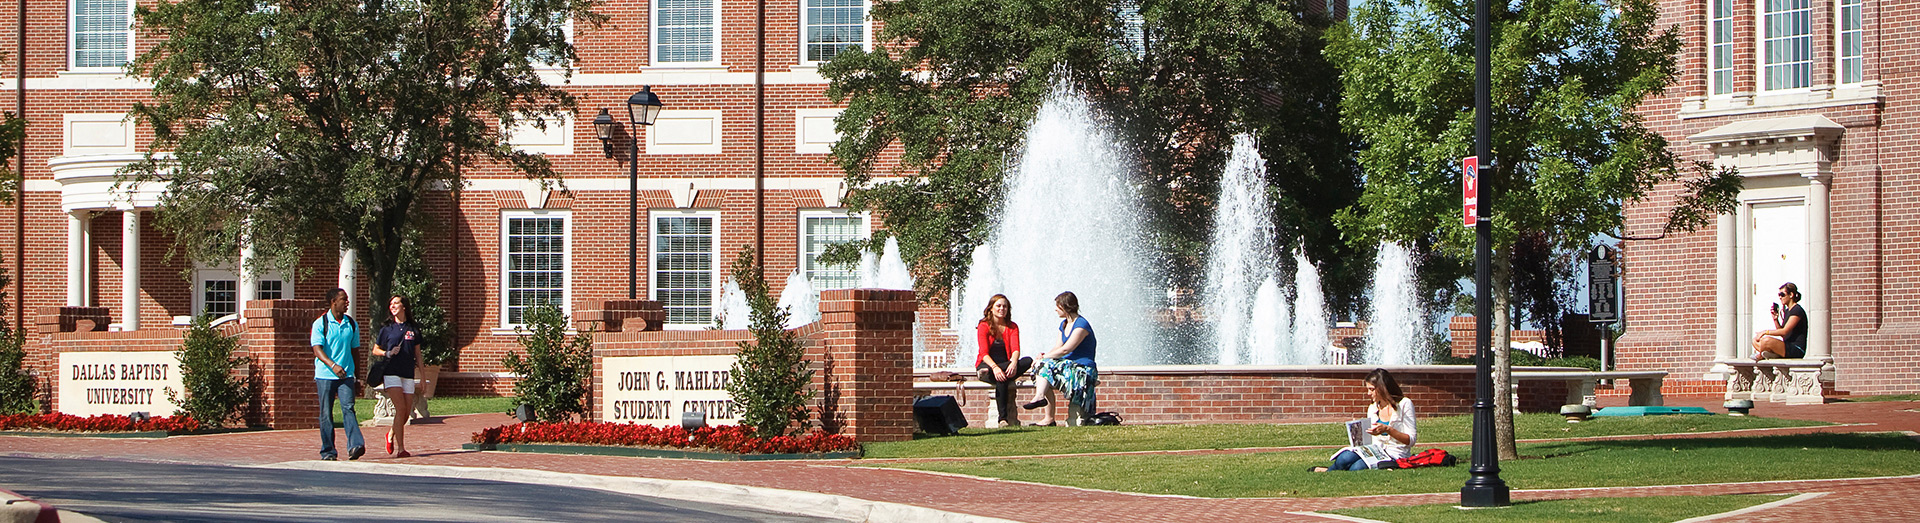 DBU Students on campus near Mahler Student Center and Blackaby Hall